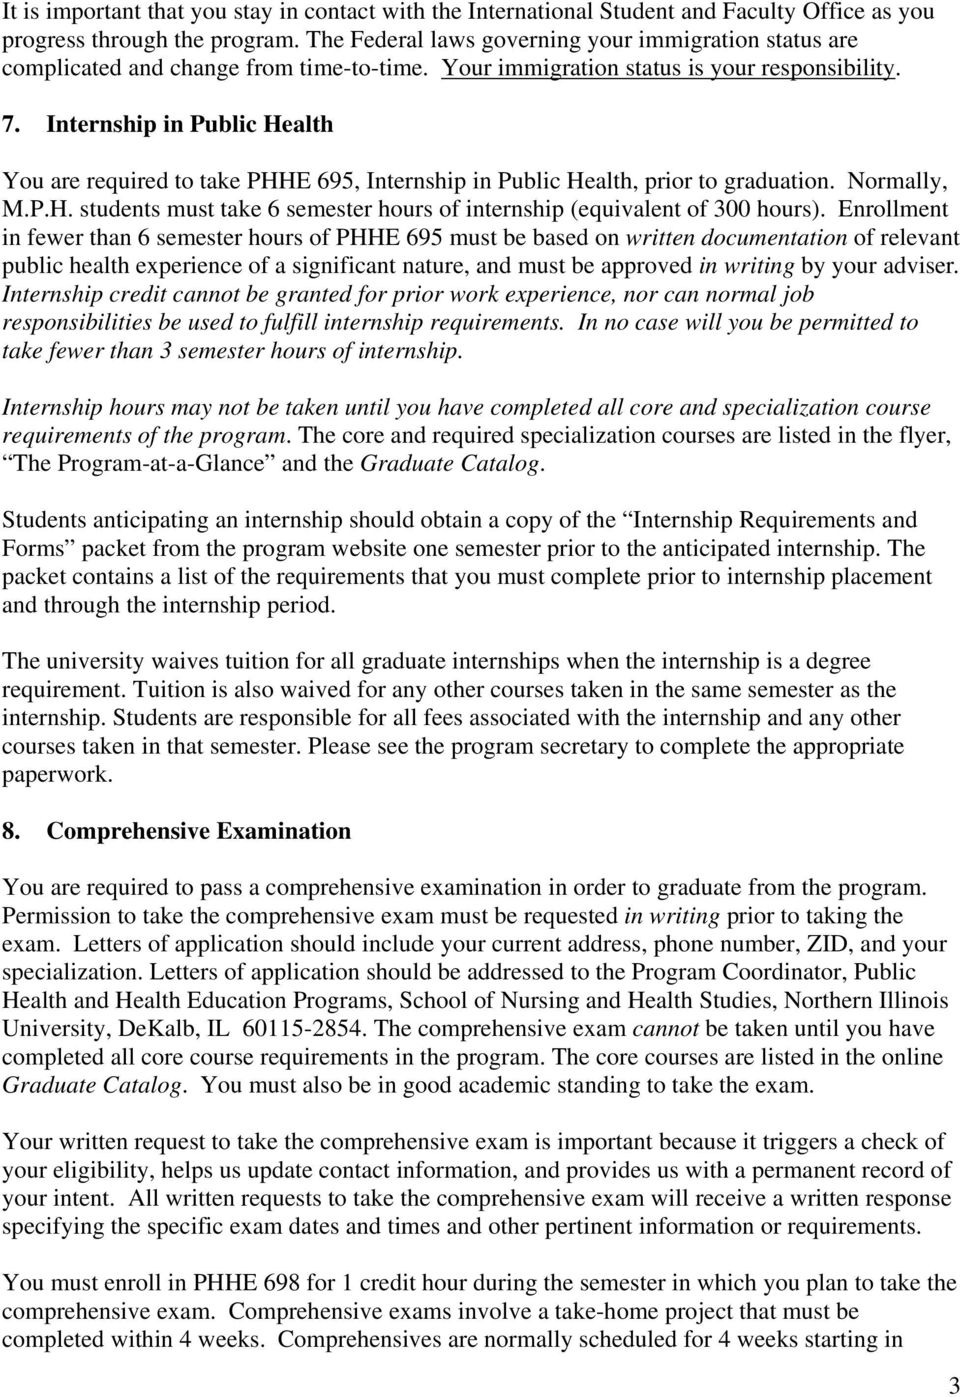 Internship in Public Health You are required to take PHHE 695, Internship in Public Health, prior to graduation. Normally, M.P.H. students must take 6 semester hours of internship (equivalent of 300 hours).